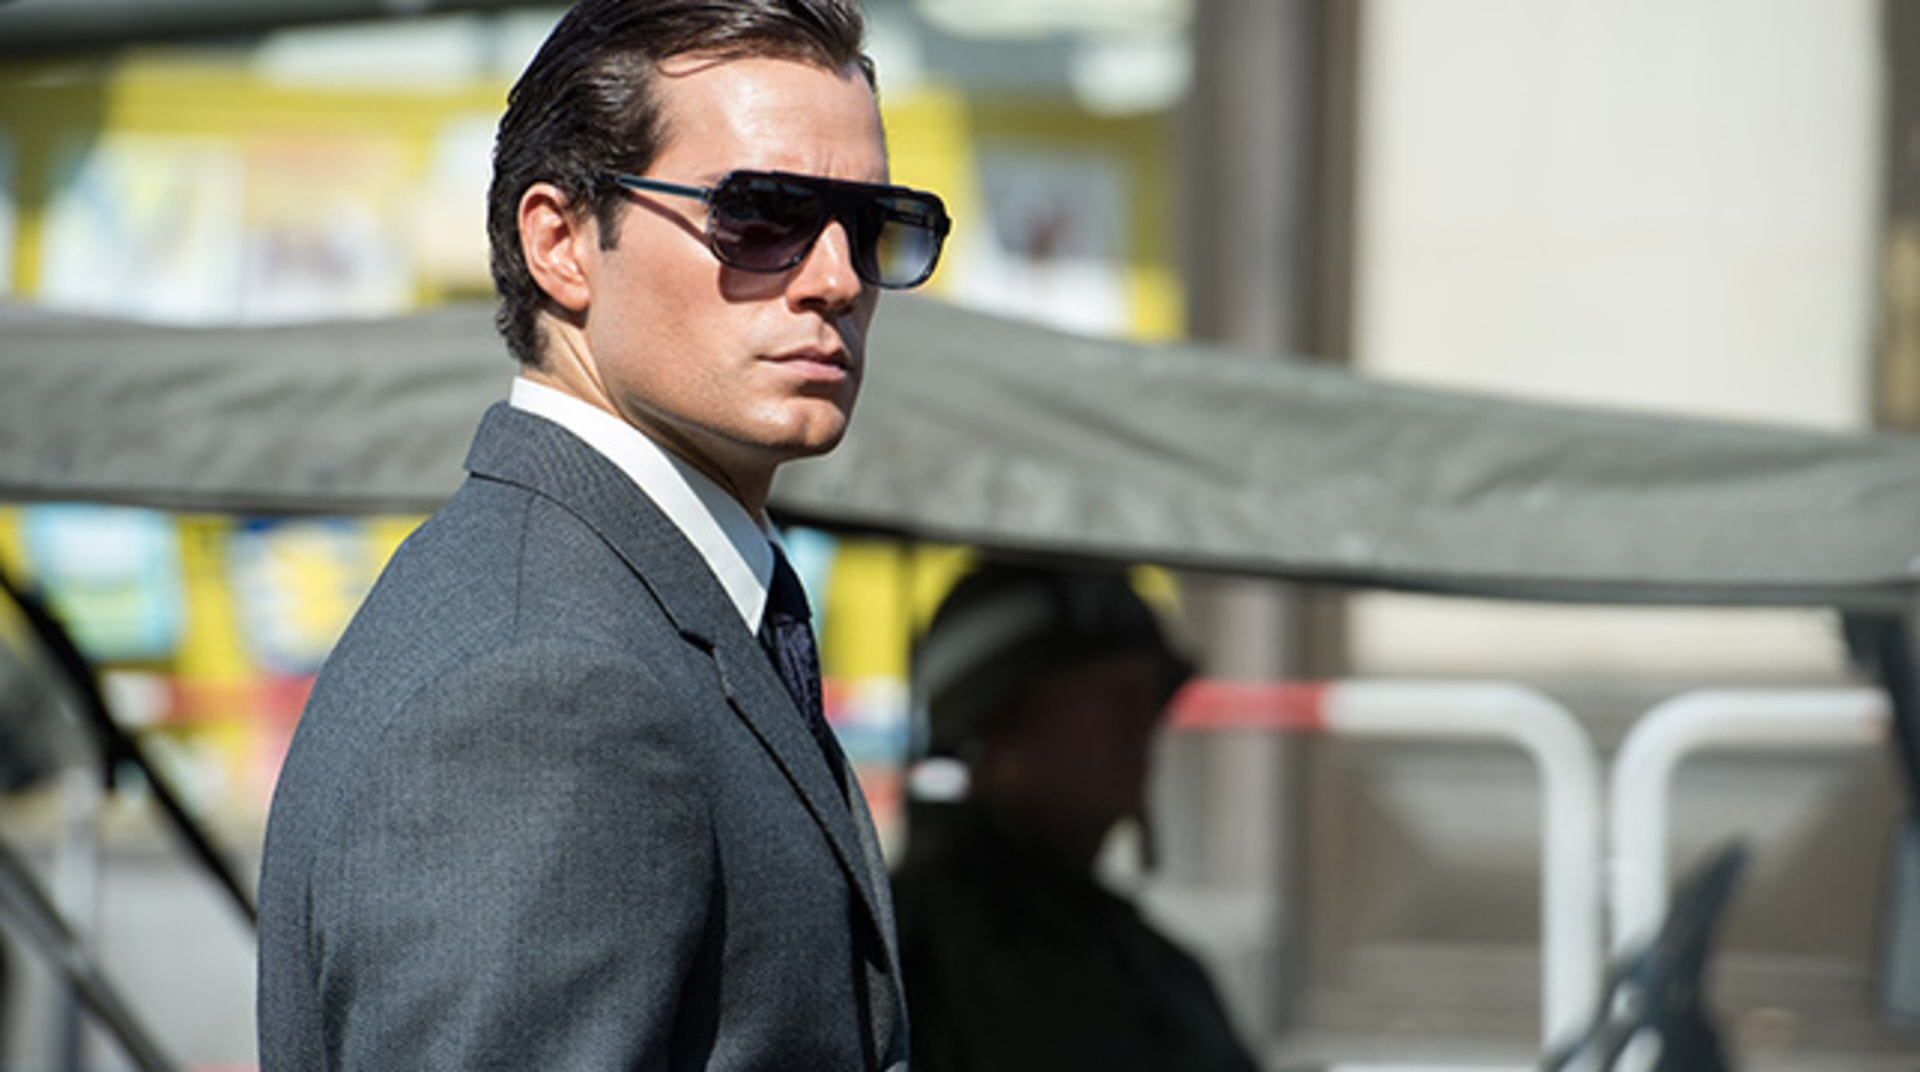 The Man From U.N.C.L.E. - Image 4